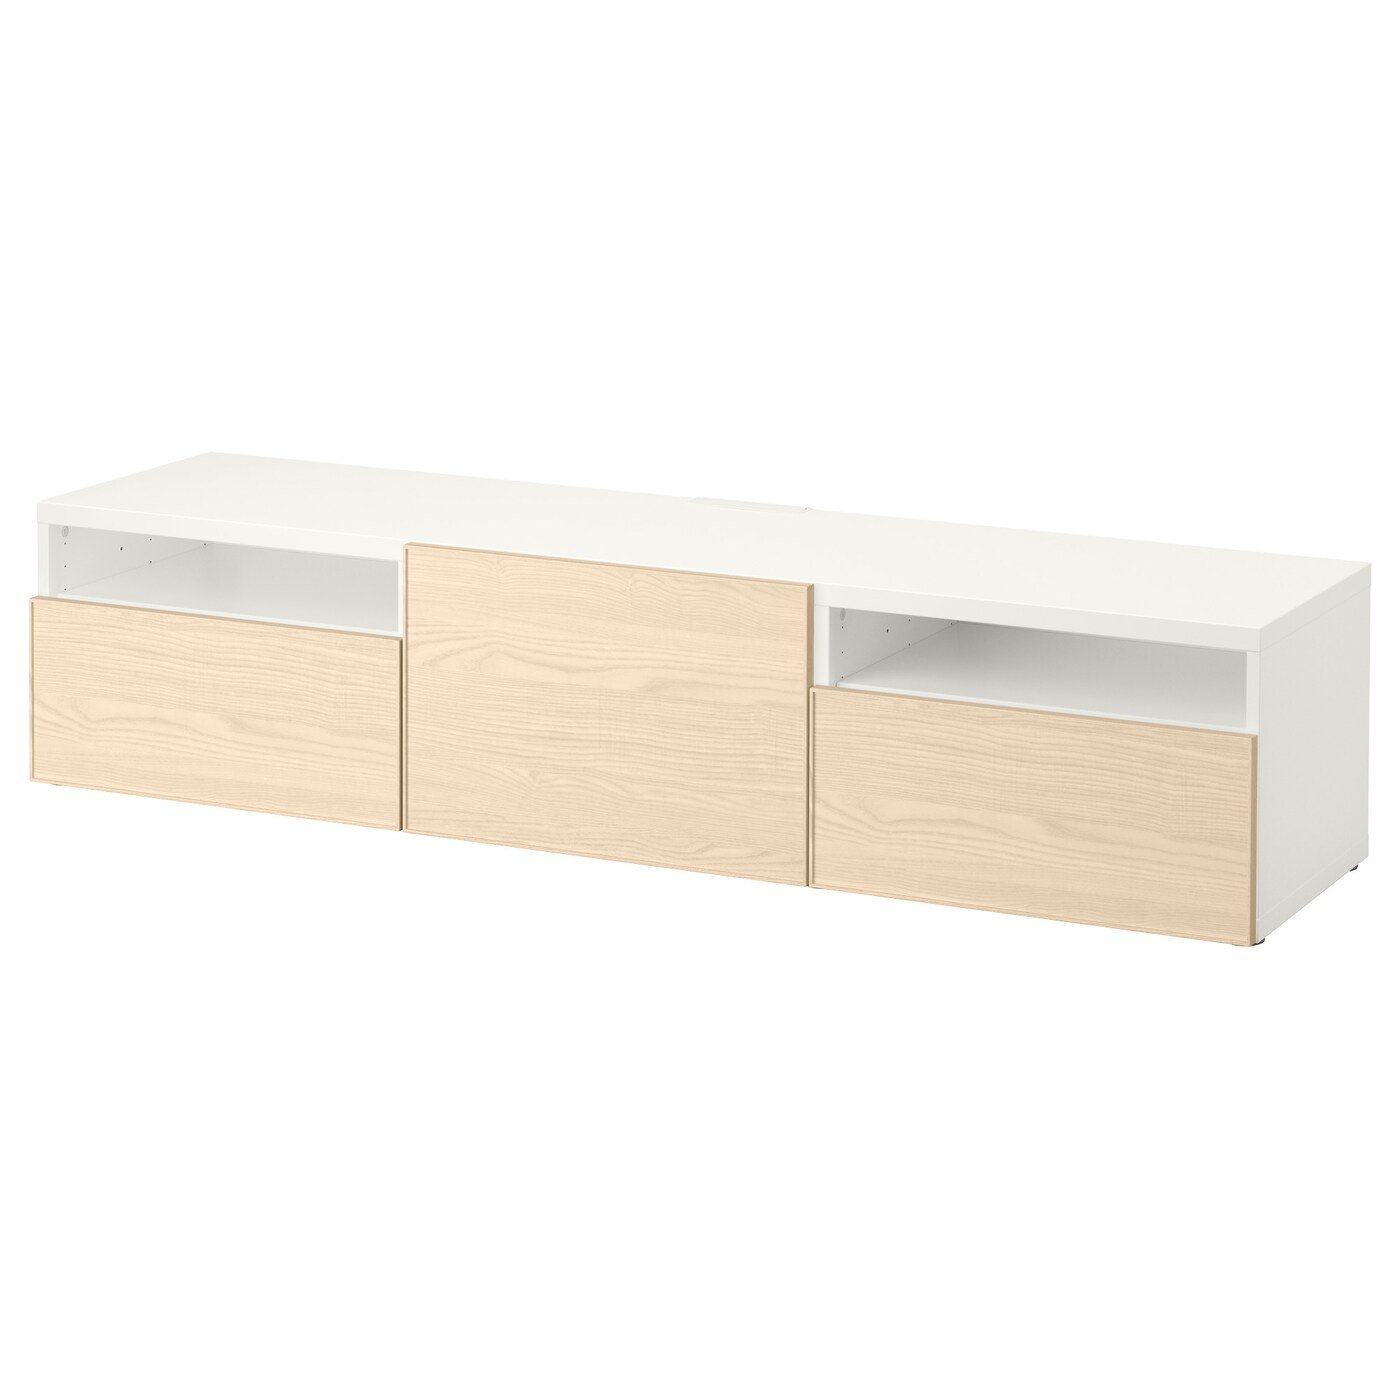 Ikea Besta Im Badezimmer Ikea Besta Hngeschrank Amazing Awesome Great Jpg With